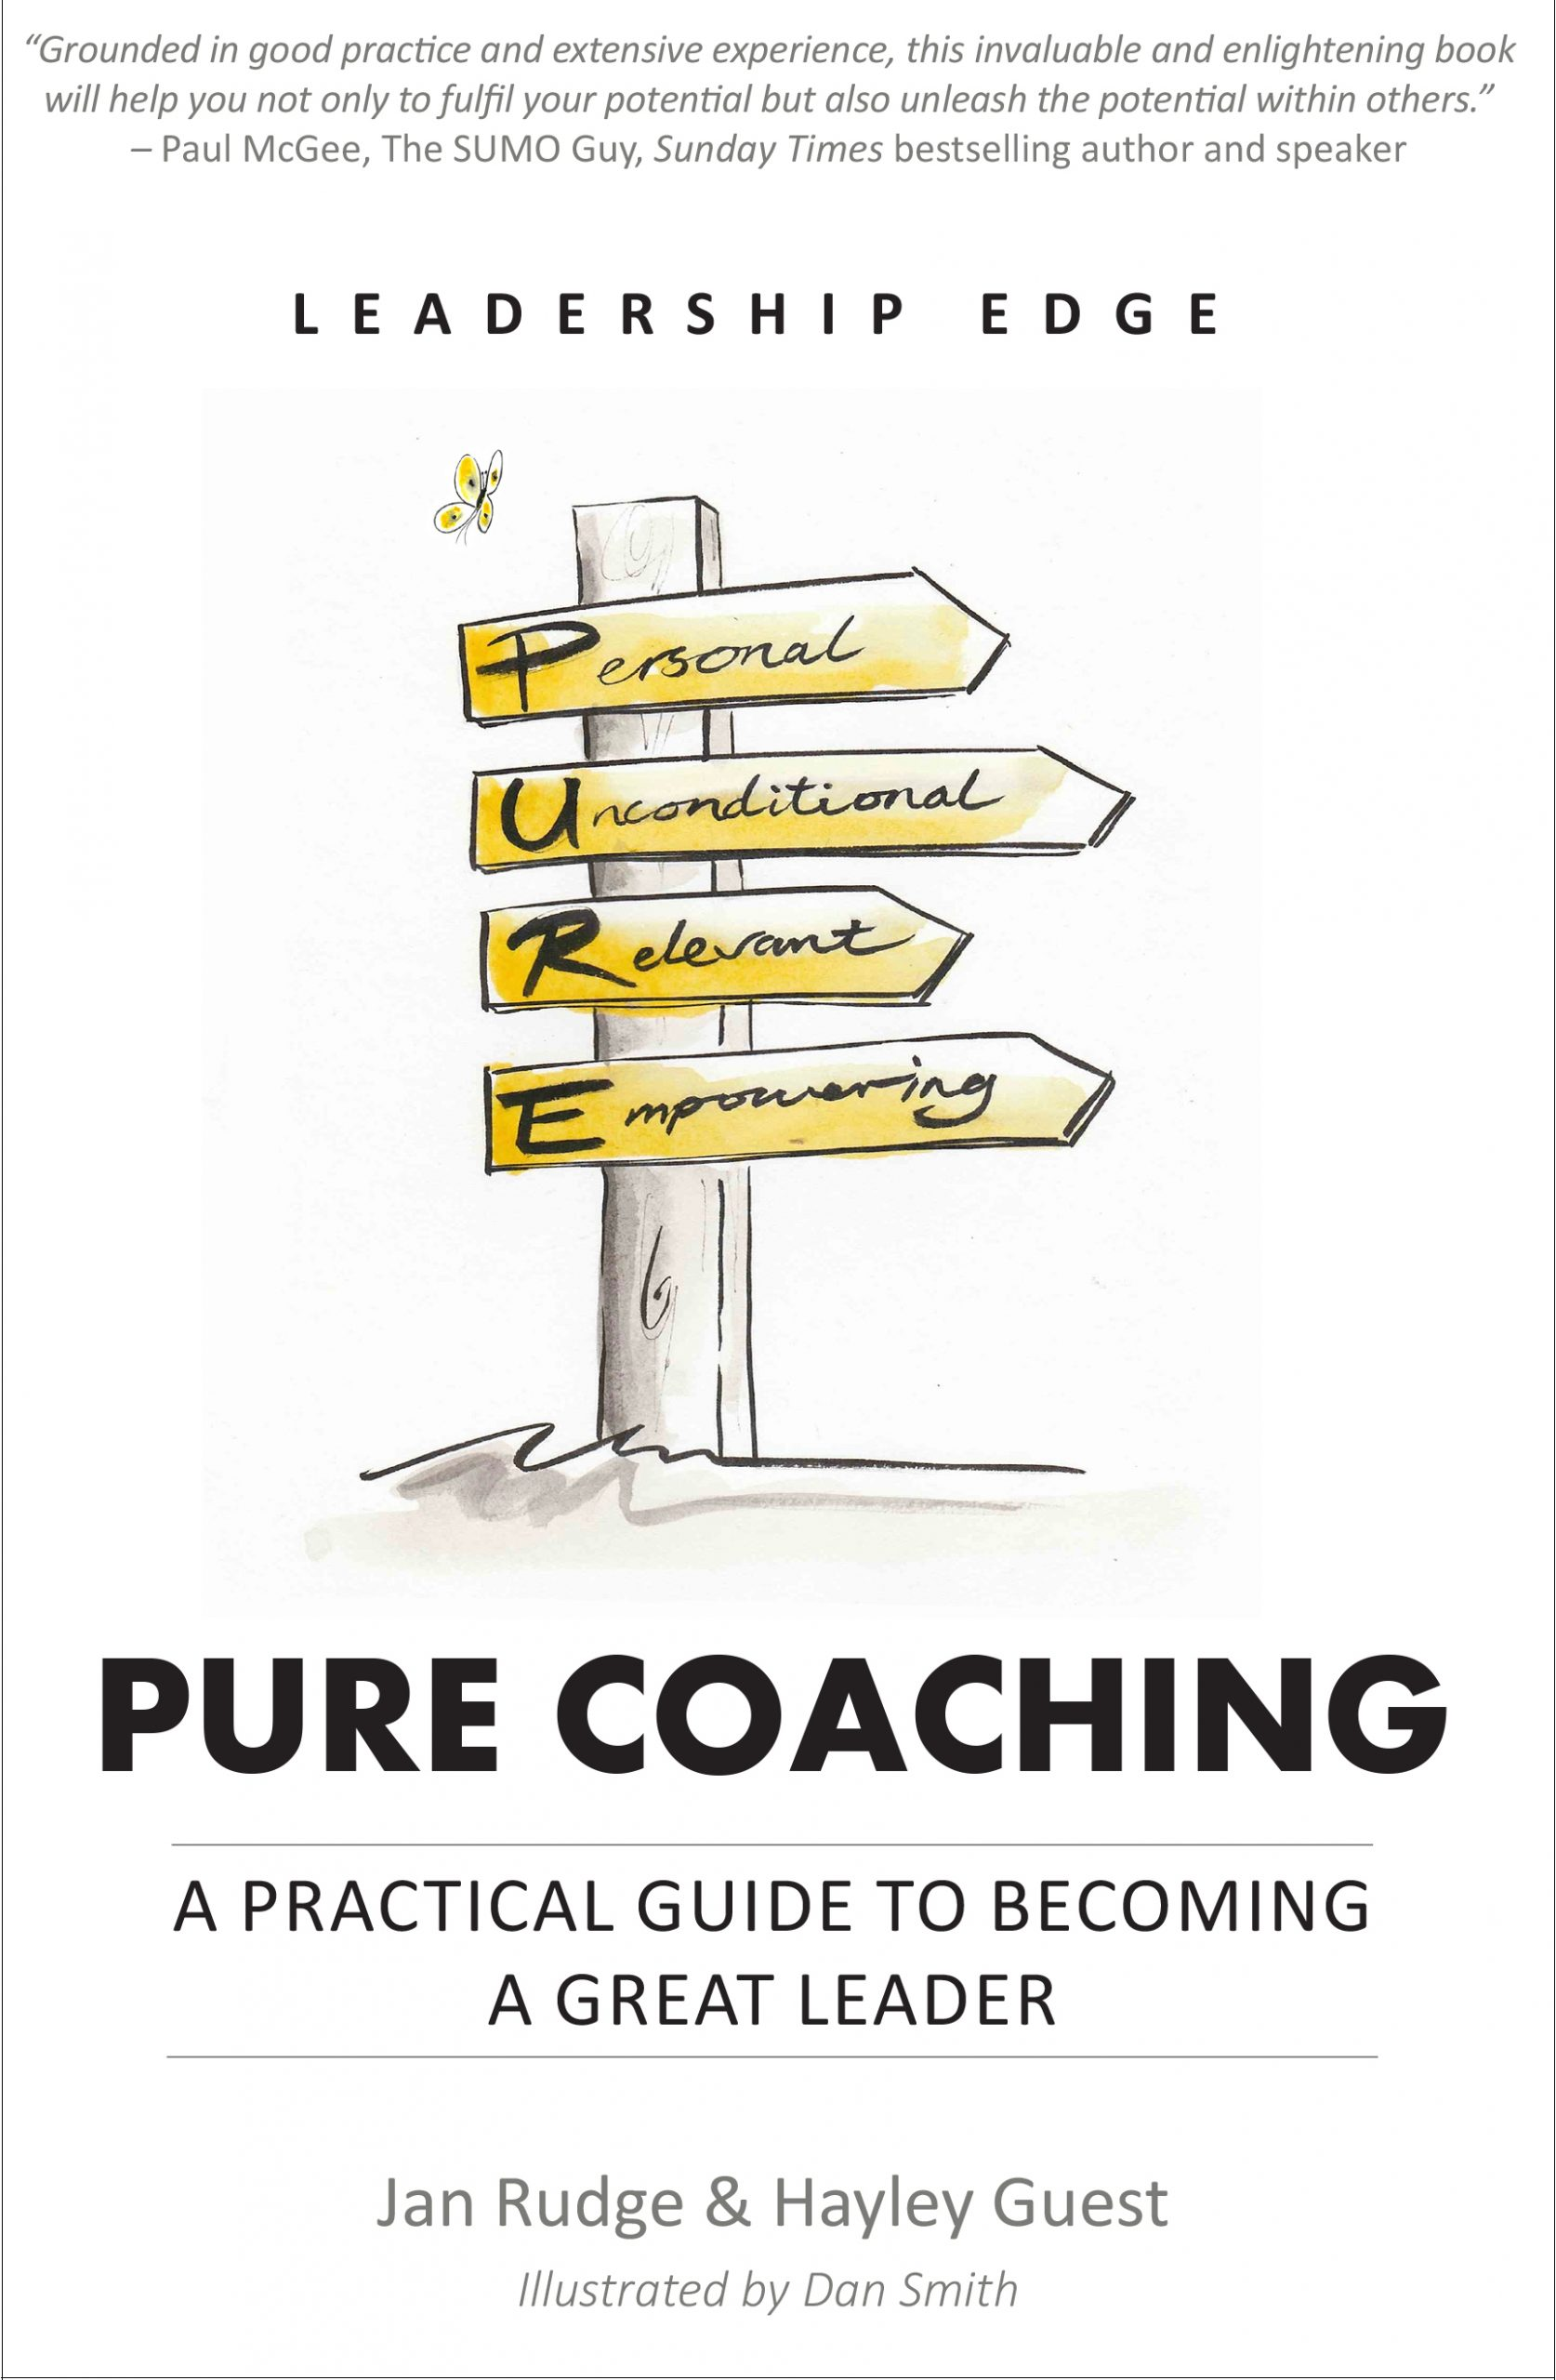 Pure Coaching – Jan Rudge and Hayley Guest